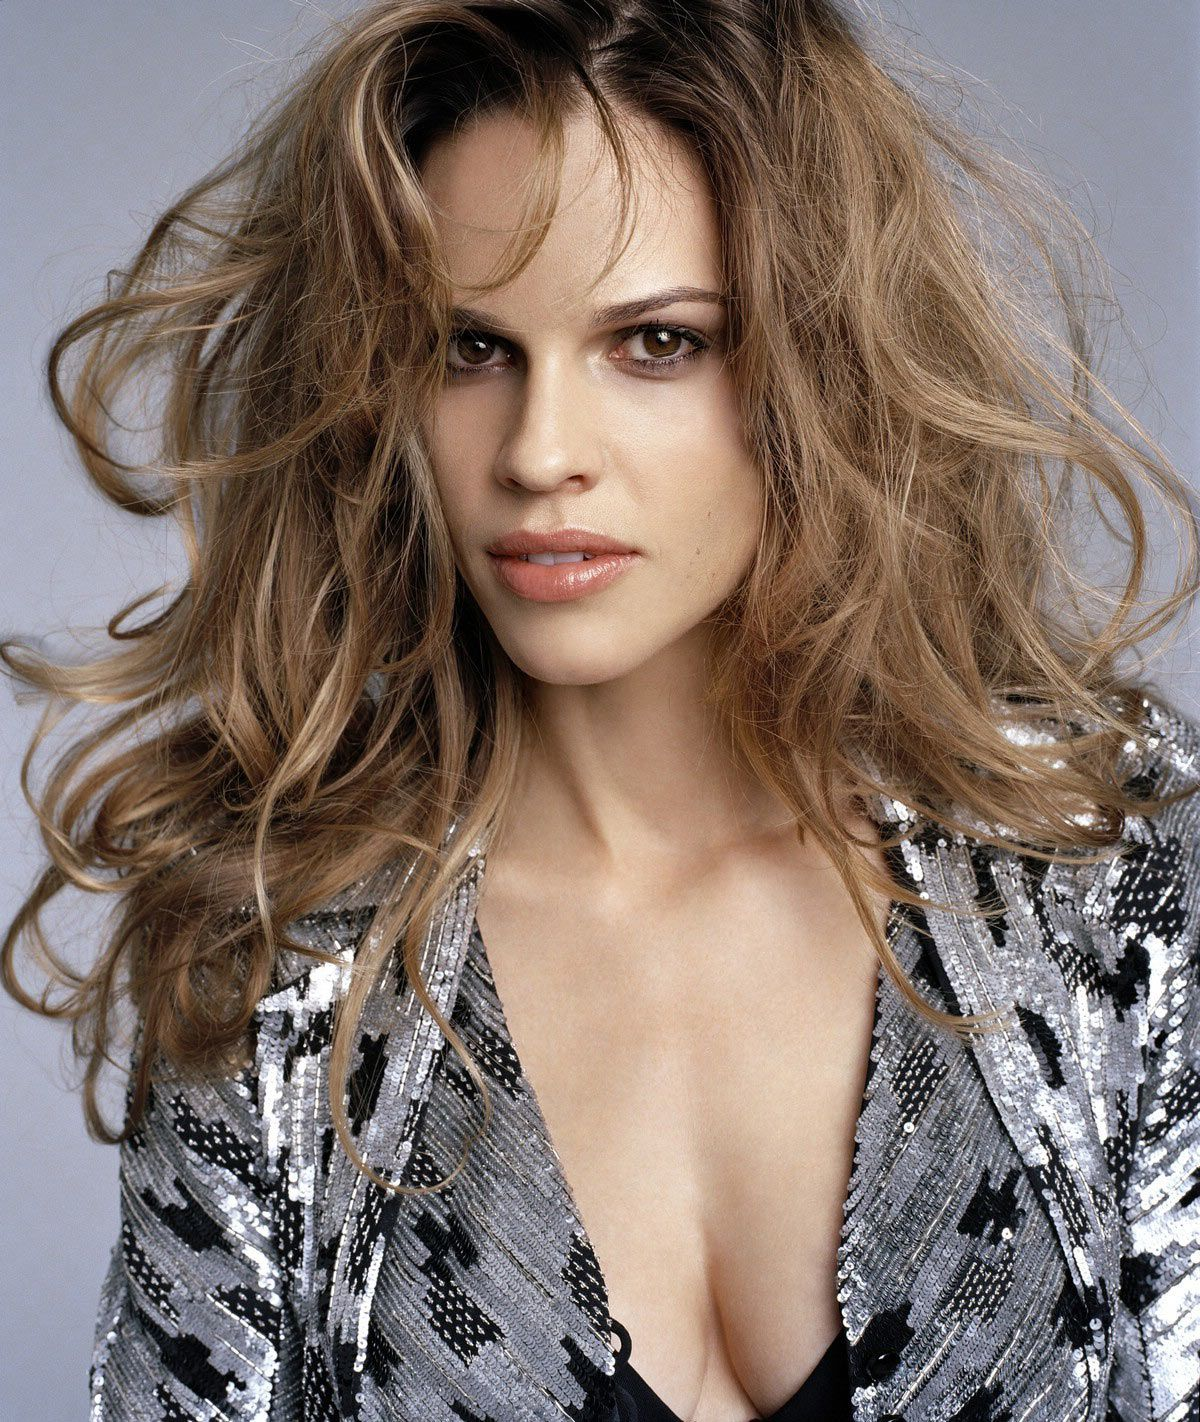 Hillary Swank Hilary Swank Looking Gorgeous With Fabulous Hair And A Hint Of